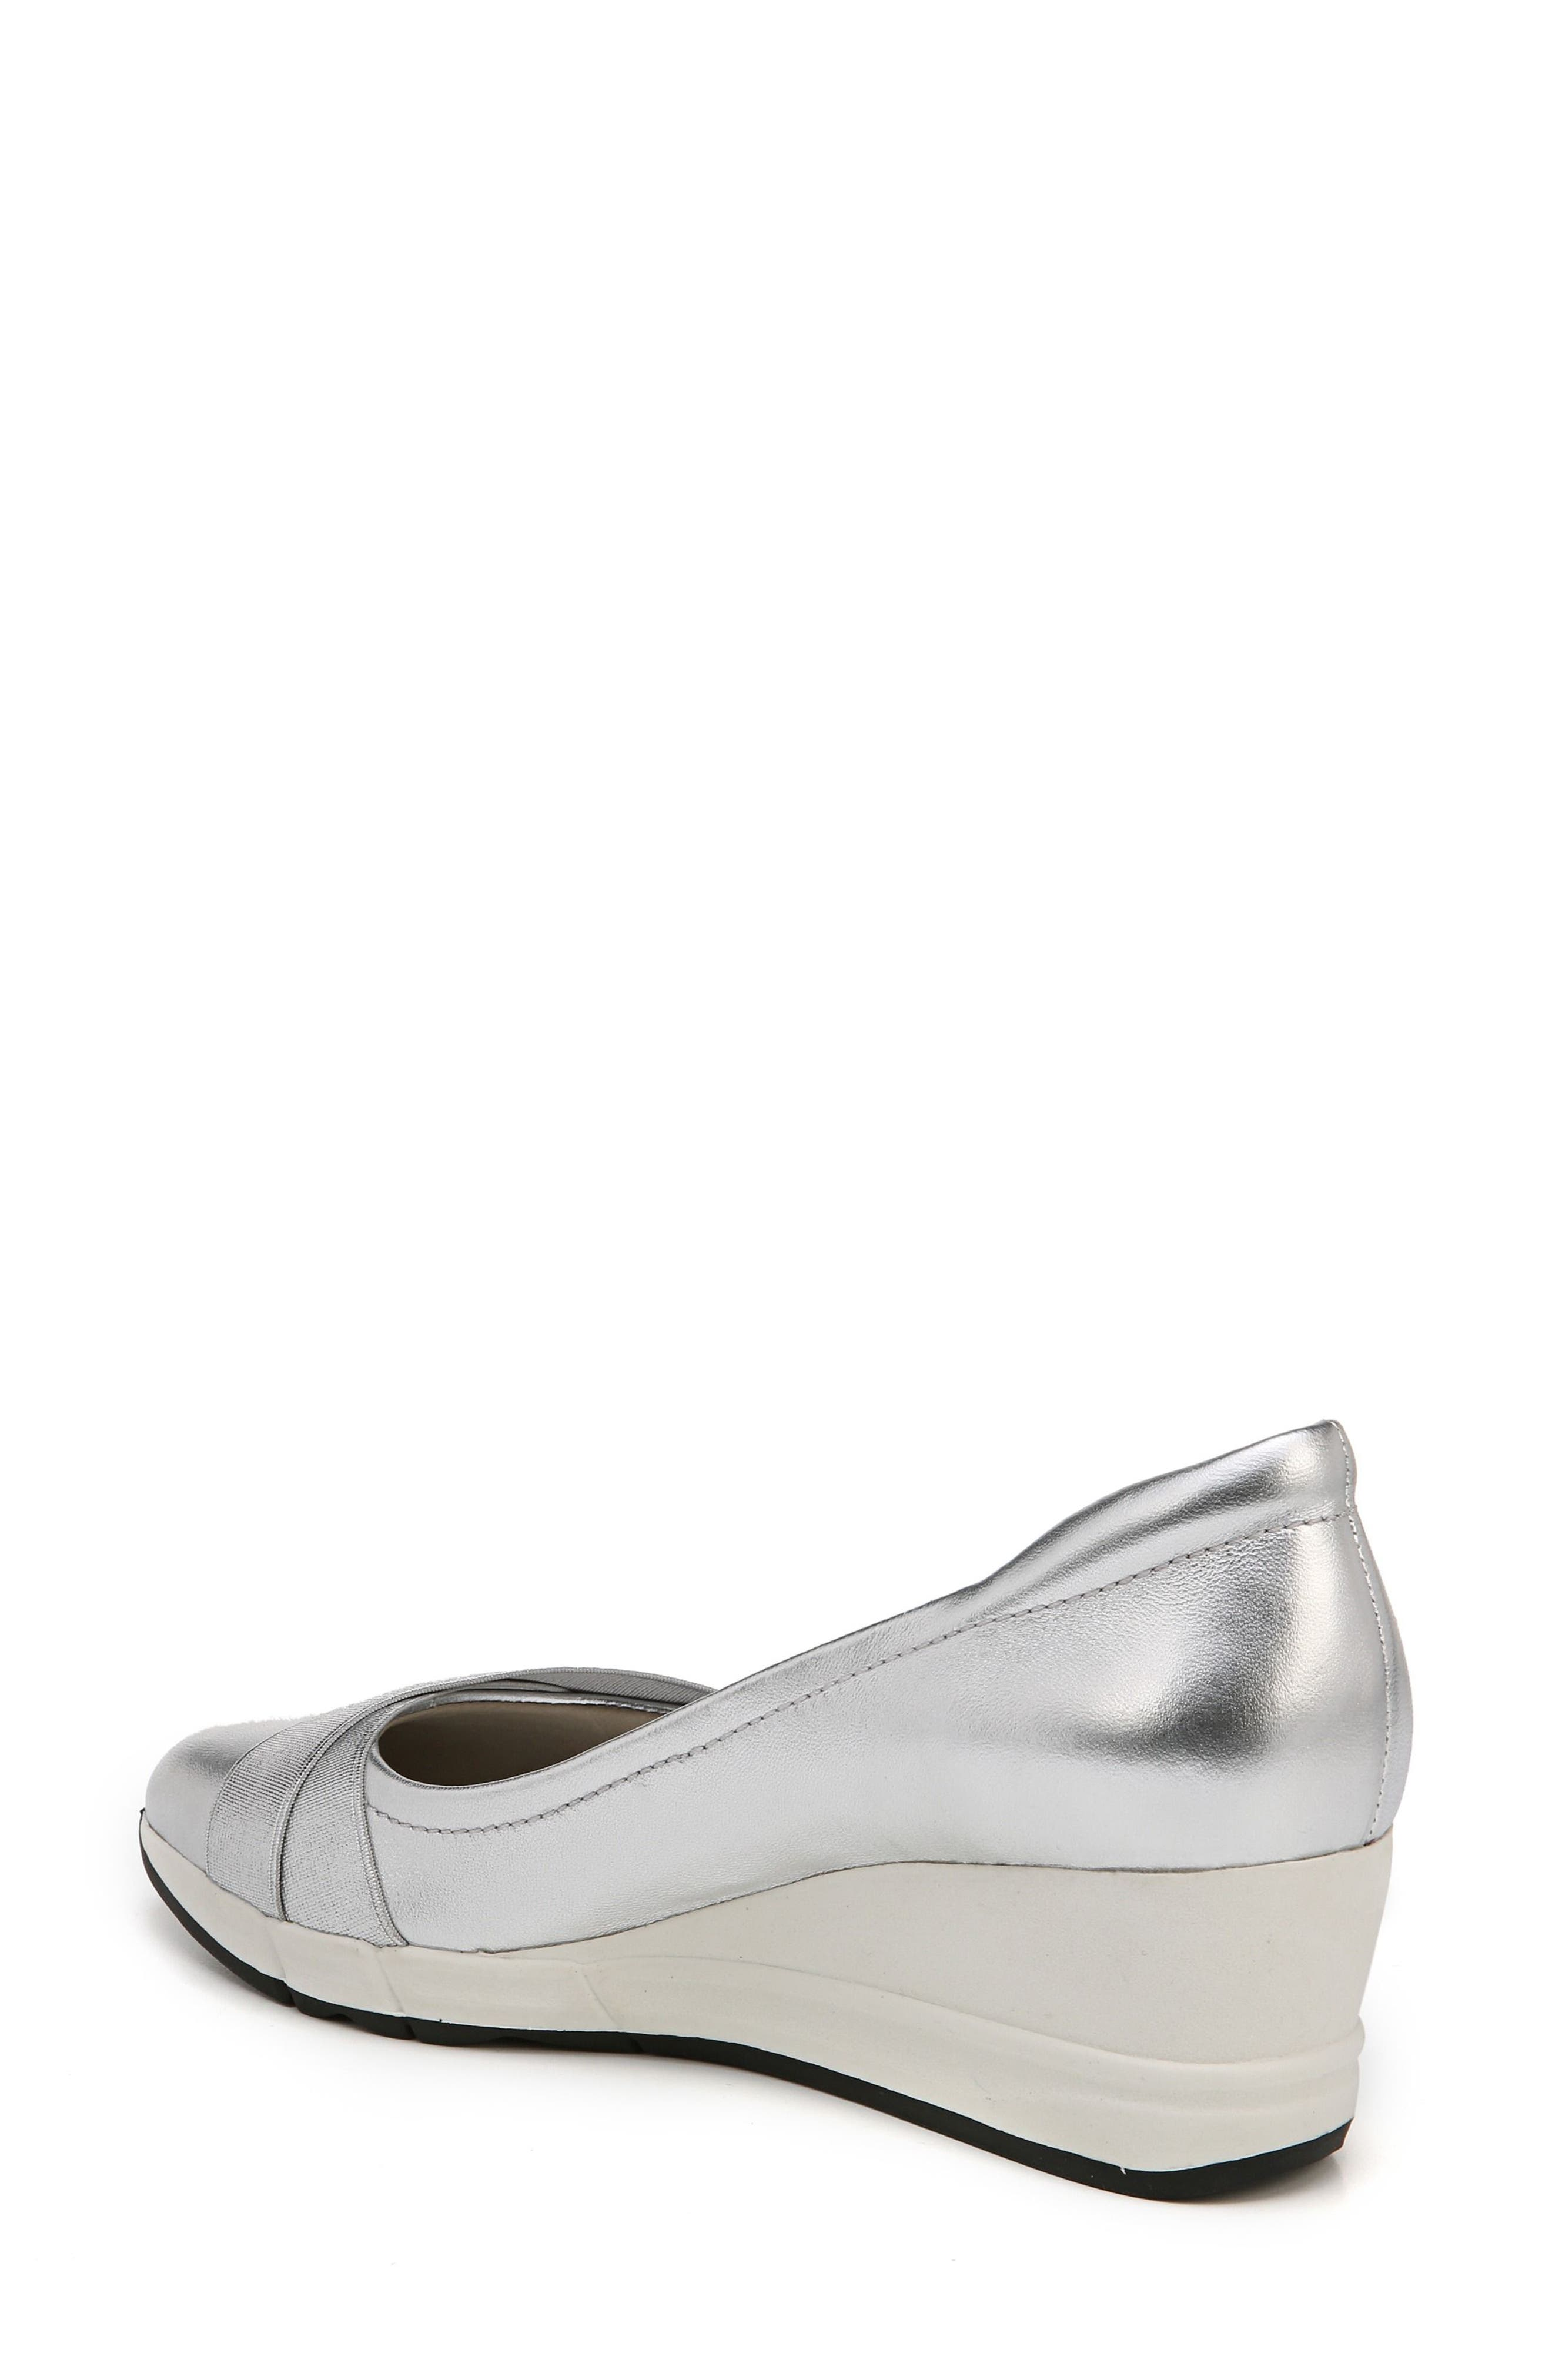 Harlyn Wedge Pump,                             Alternate thumbnail 2, color,                             Silver Leather